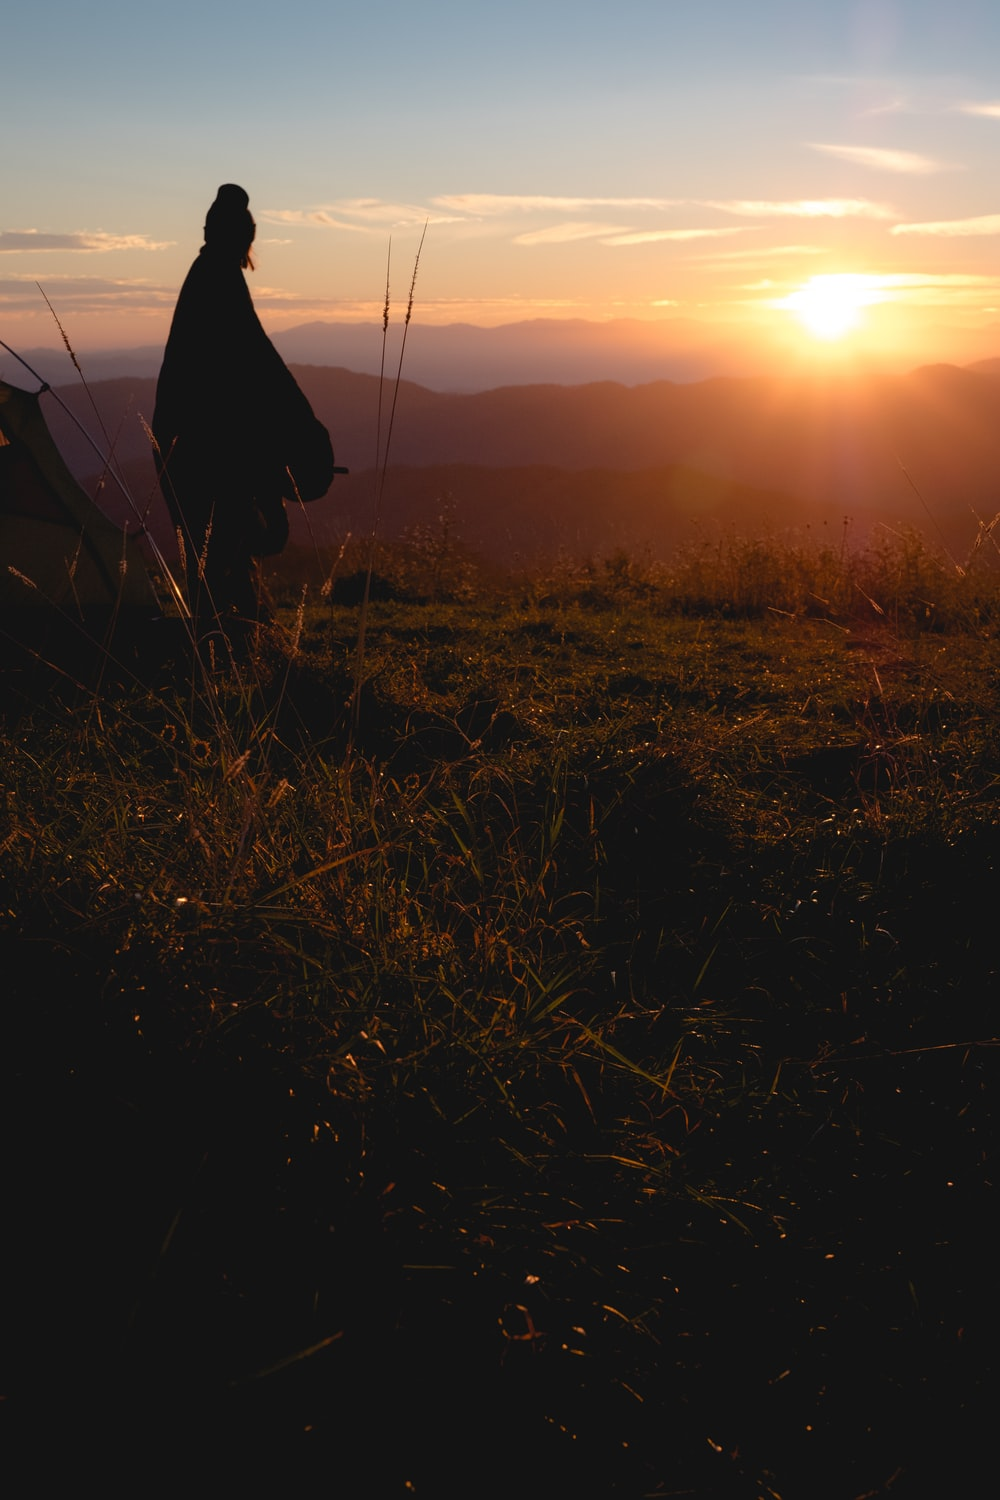 silhouette photo of person wearing robe standing on hill